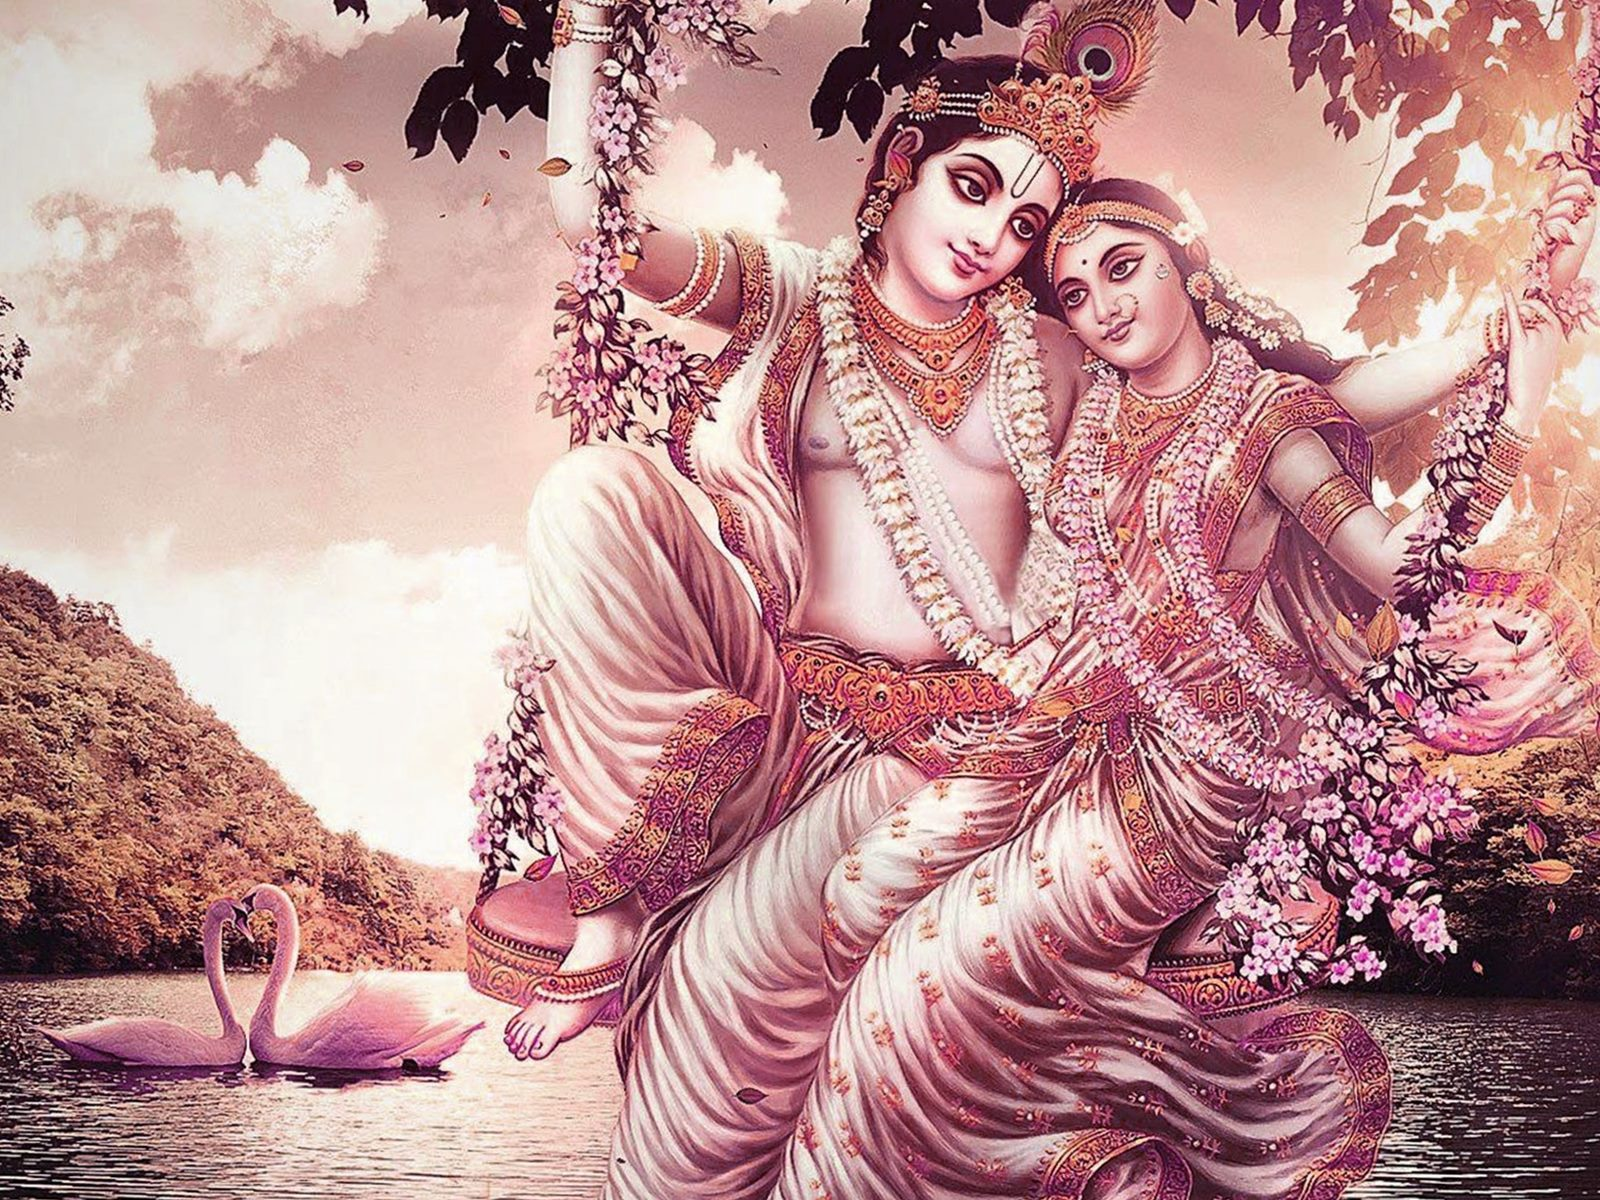 Love Wallpaper Of Radha Krishna : Top 35+ Best Beautiful Lord Krishna HD Wallpaper Images ...